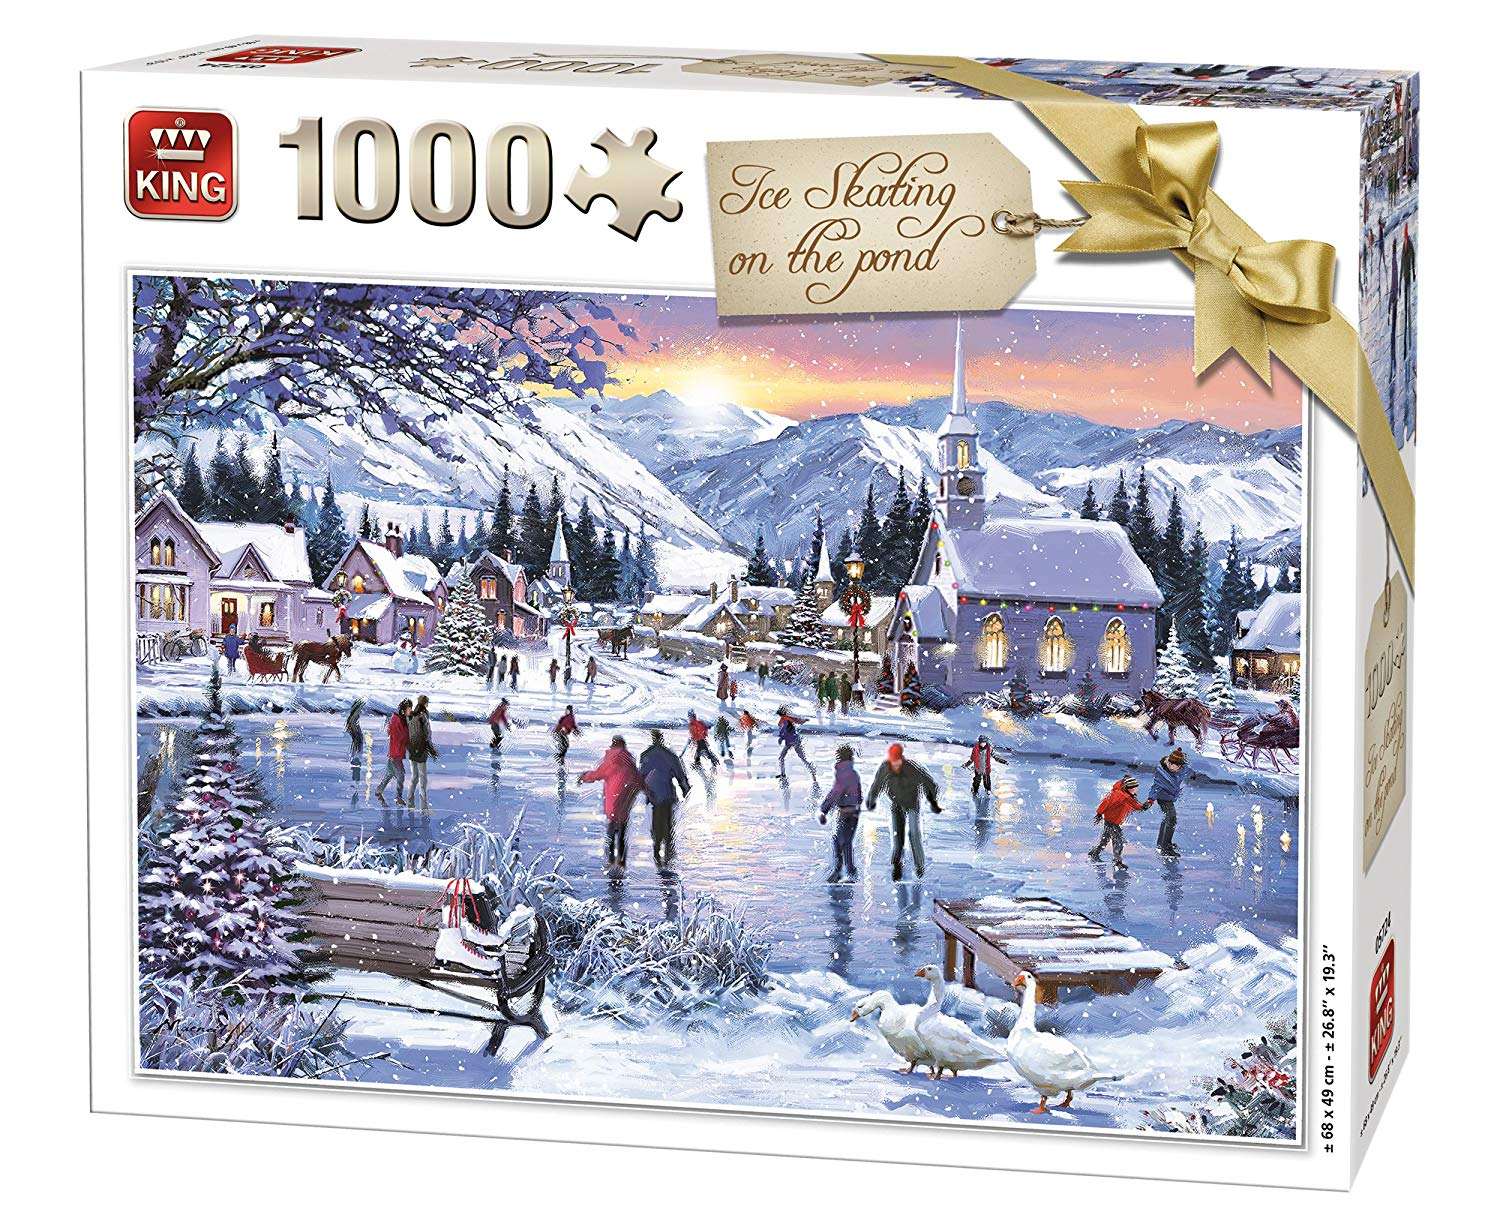 king-international-ice-skating-on-the-pond-1000-teile-puzzle-king-puzzle-05724